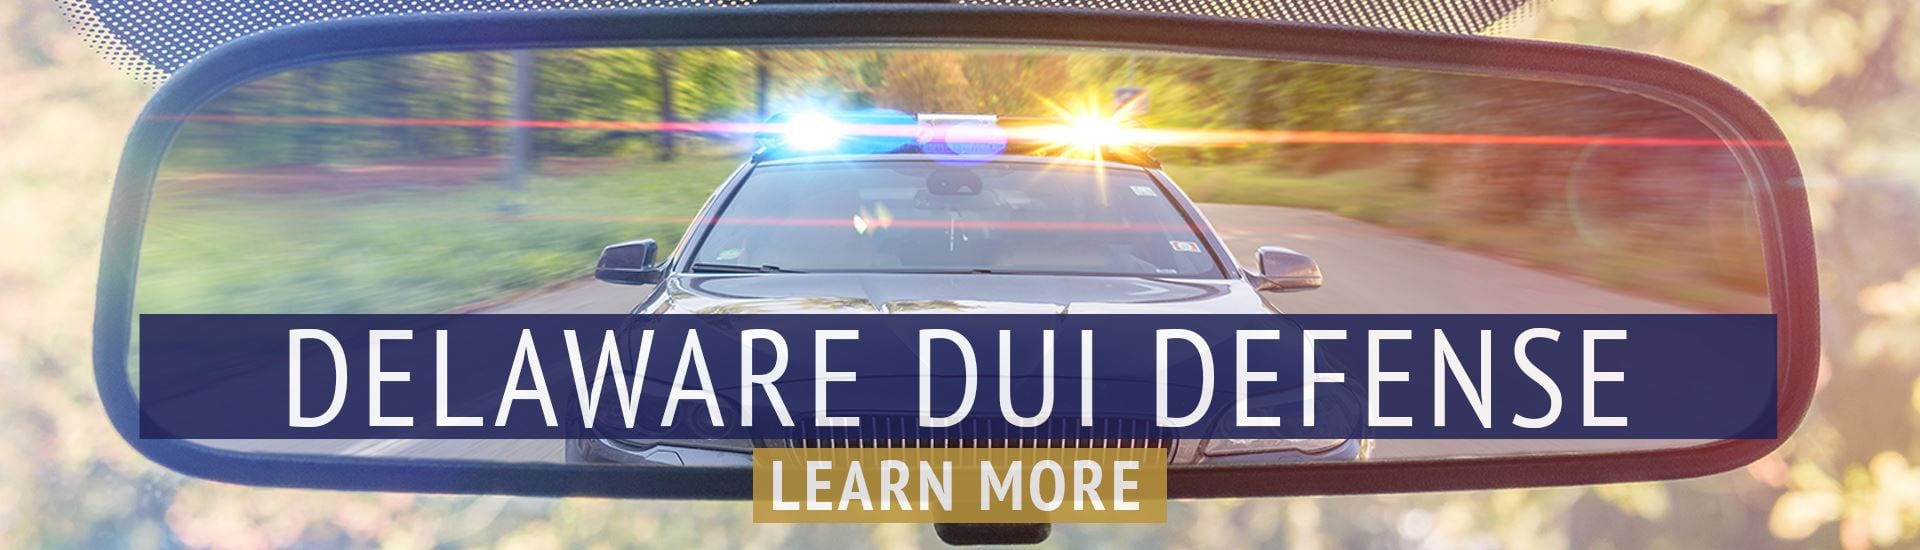 Delaware DUI Defense